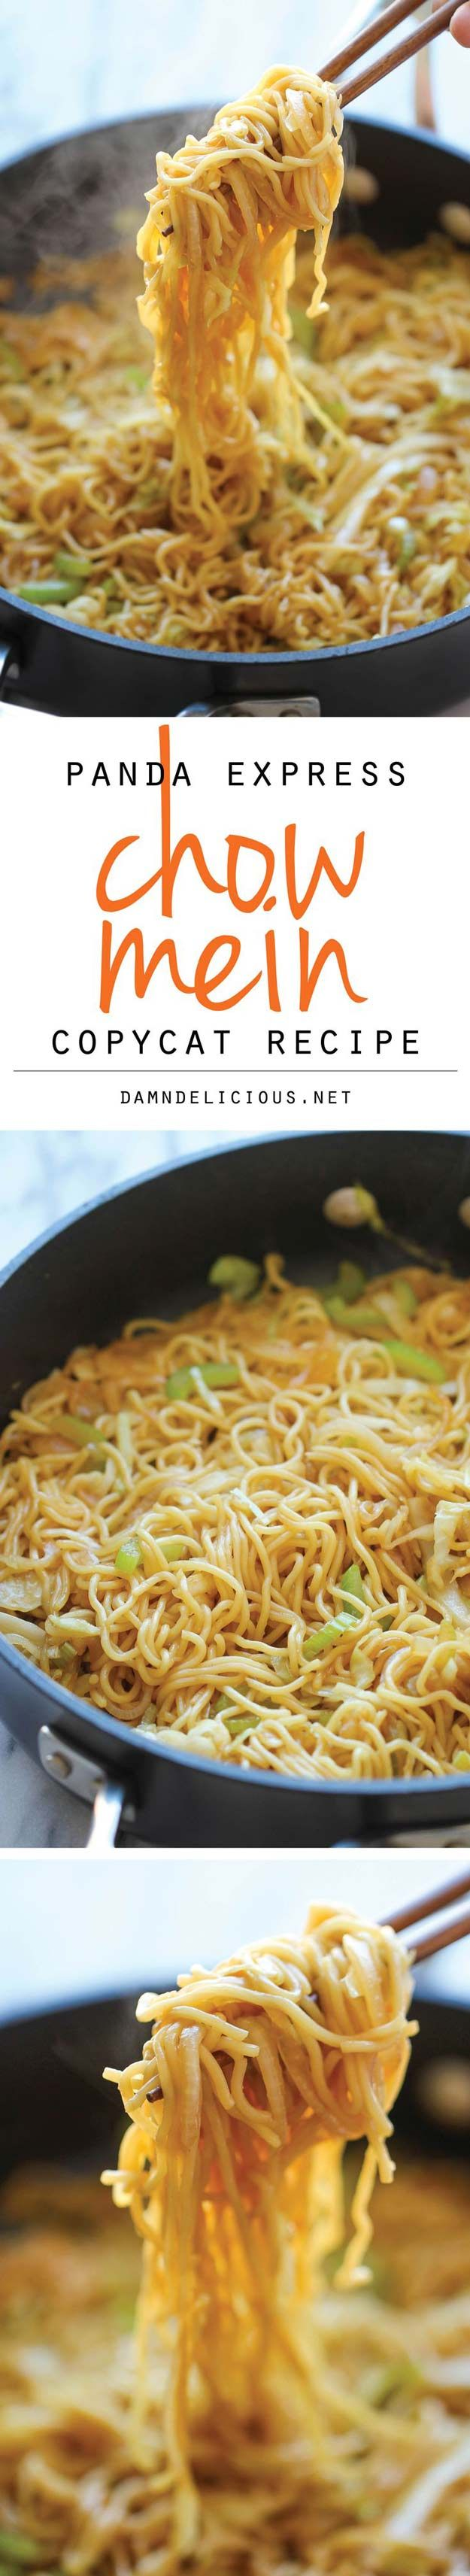 Copycat Recipes From Top Restaurants. Best Recipe Knockoffs from Chipotle, Starbucks, Olive Garden, Cinabbon, Cracker Barrel, Taco Bell, Cheesecake Factory, KFC, Mc Donalds, Red Lobster, Panda Express  |   Panda Express Chow Mein Copycat  | http://diyjoy.com/copycat-recipes